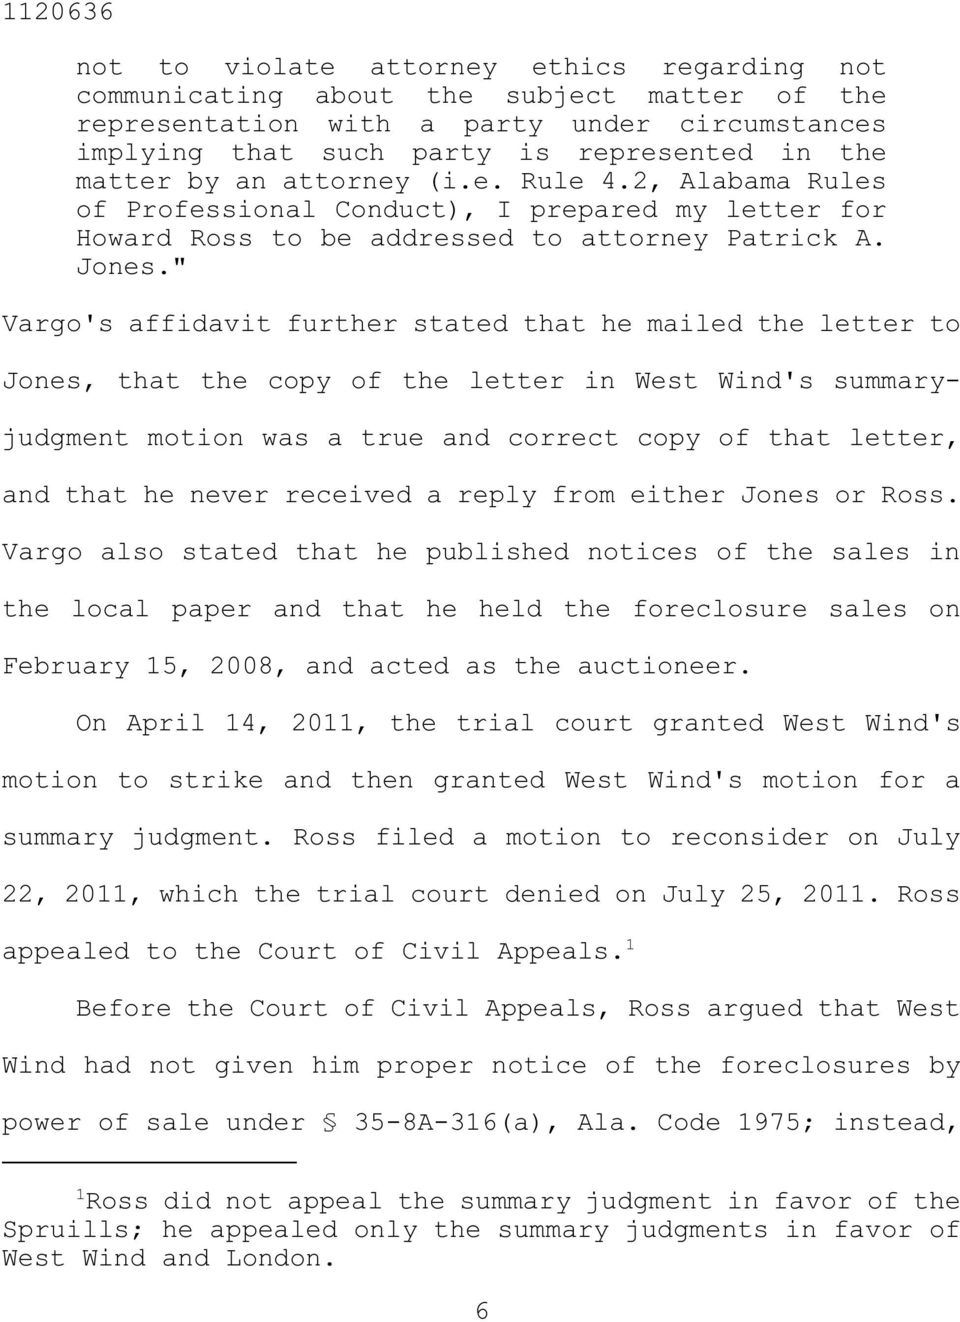 """ Vargo's affidavit further stated that he mailed the letter to Jones, that the copy of the letter in West Wind's summaryjudgment motion was a true and correct copy of that letter, and that he never"